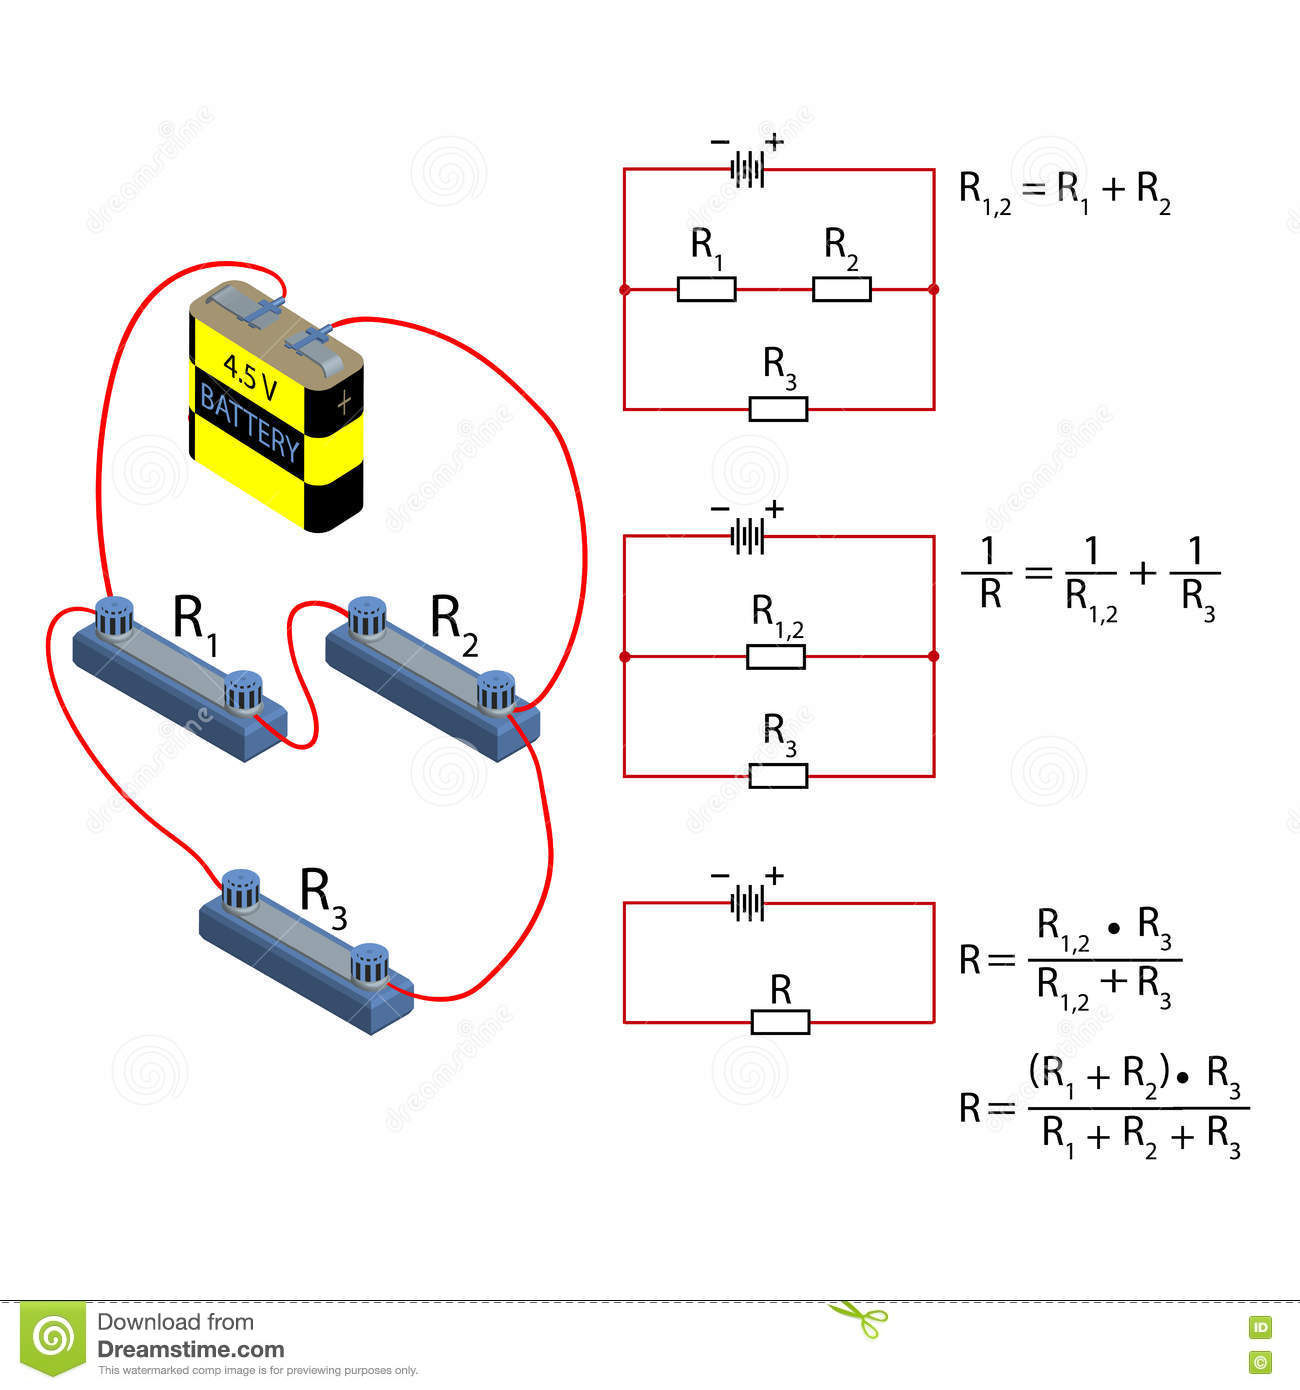 Mixed Connection Of Conductors Stock Vector Illustration How Does Someone Calculate The Total Resistance Such A Circuit Illustrates An Example To Branched